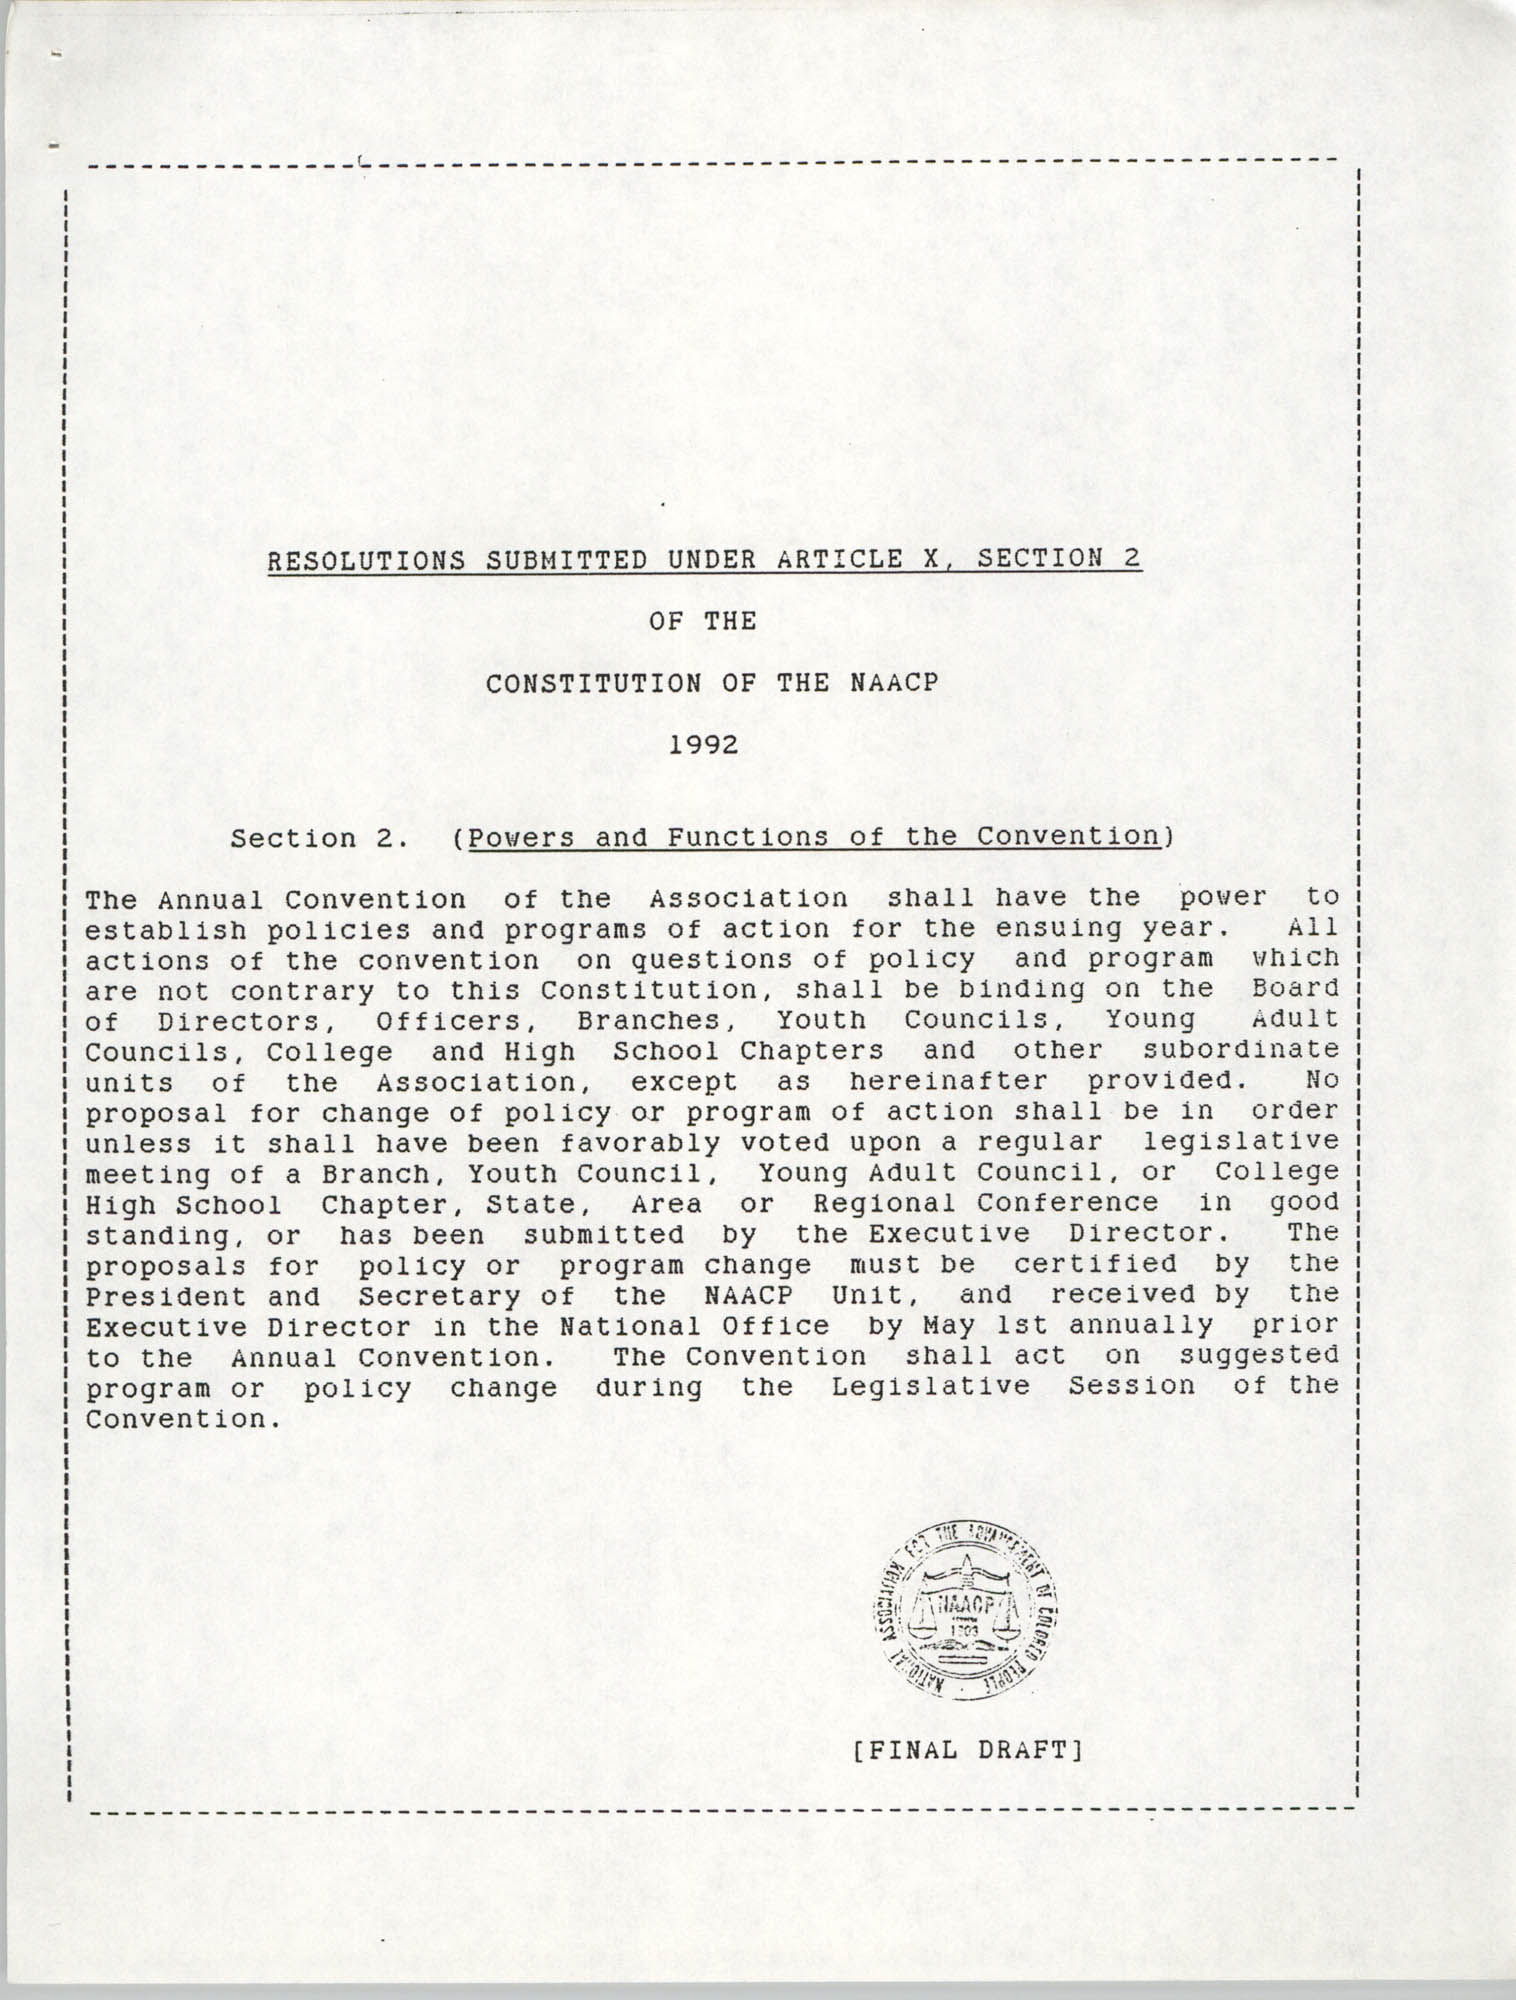 Resolutions Submitted Under Article X, Section 2 of the Constitution of the NAACP, 1992